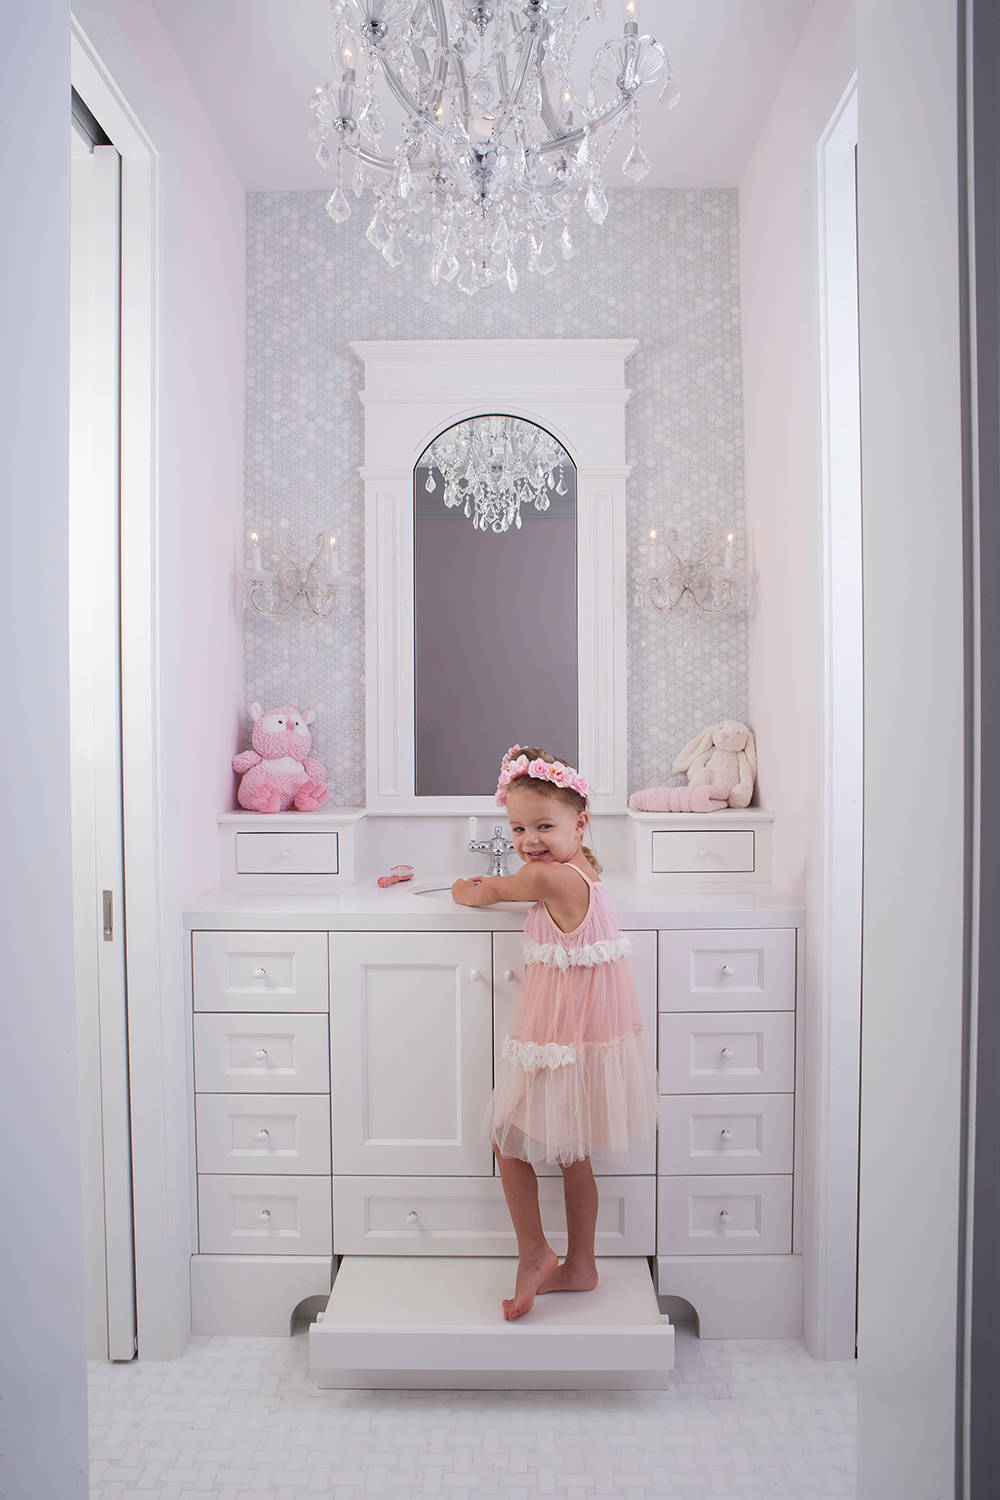 75 Beautiful Mosaic Tile Kids Bathroom Pictures Ideas May 2021 Houzz